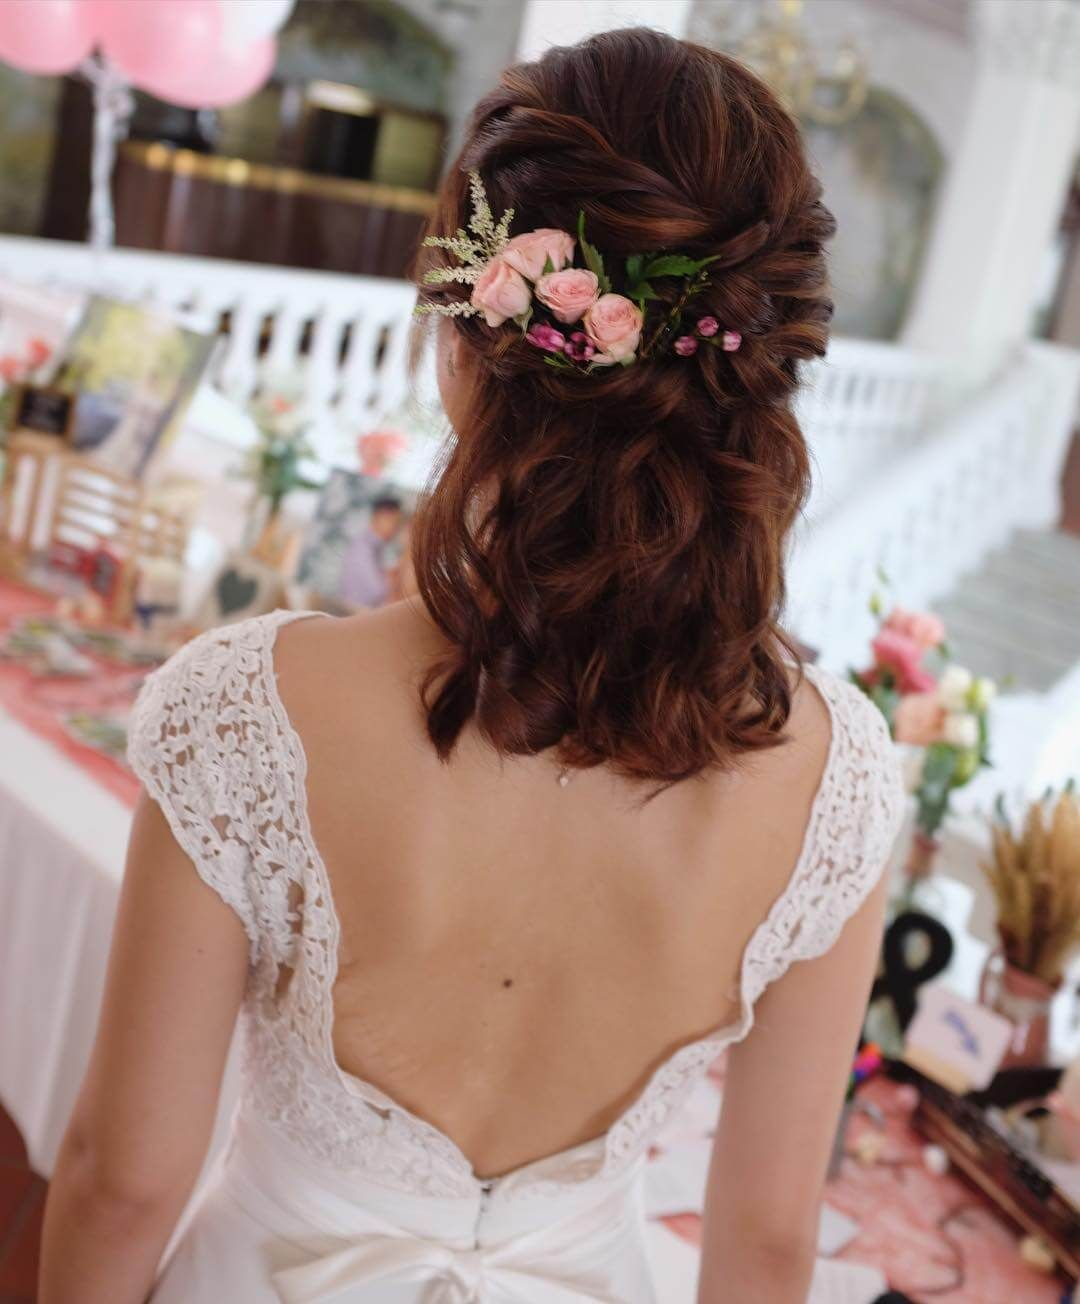 70+ wedding hairstyles for curly hair ideas | bride dresses